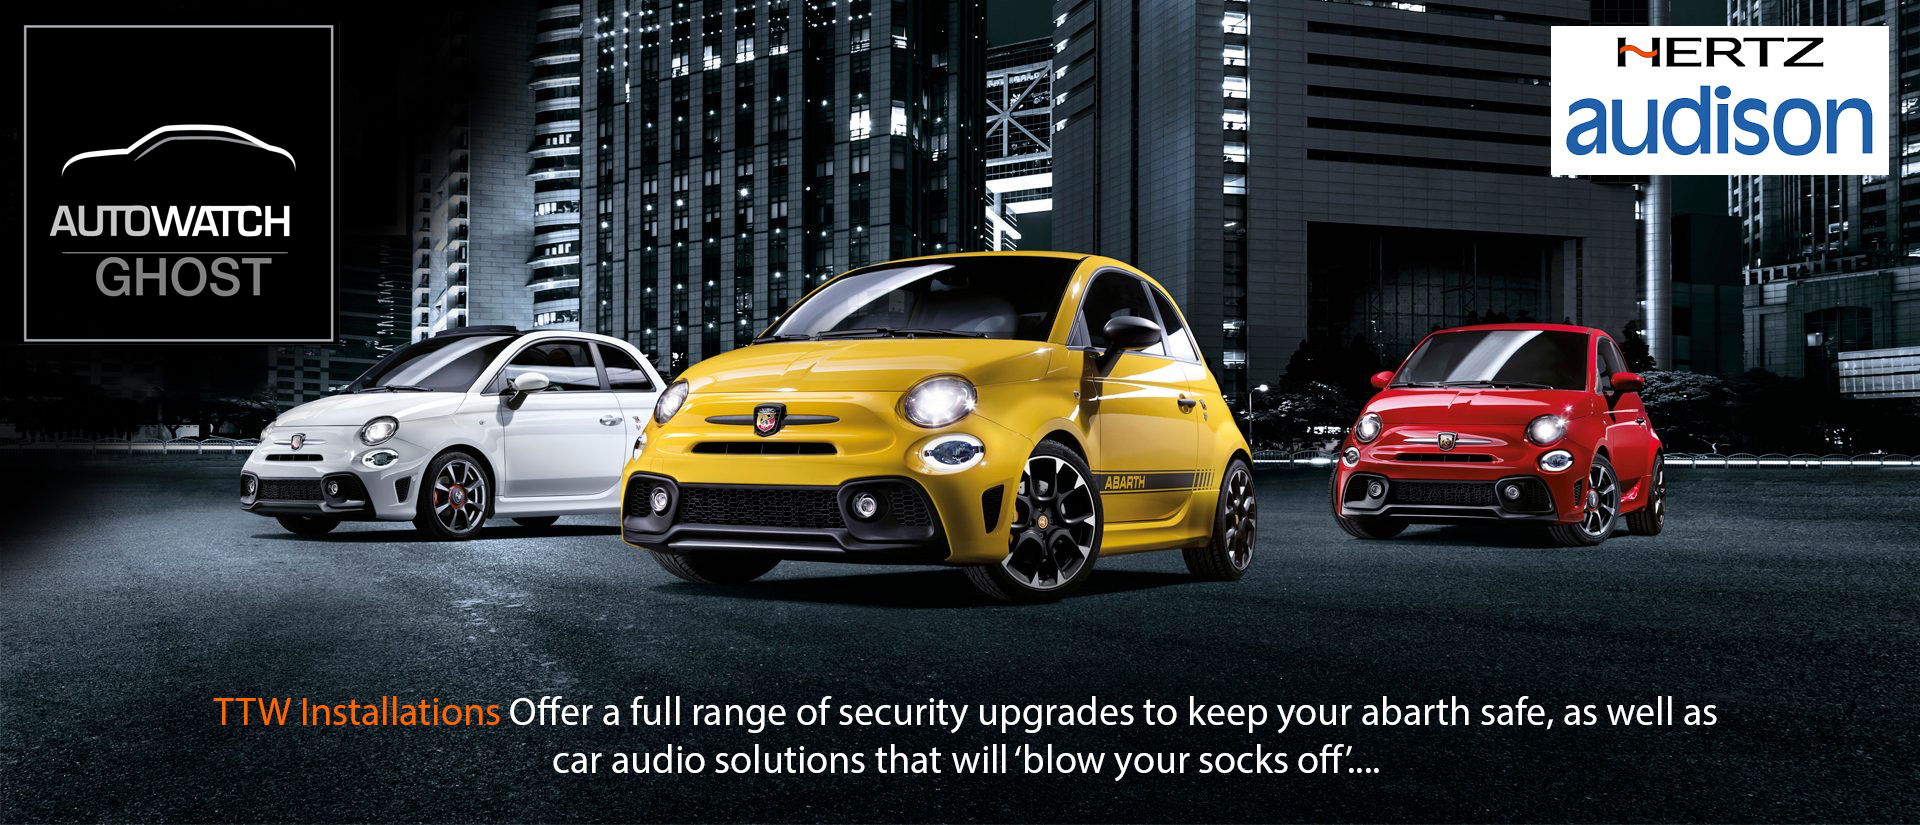 Fiat Abarth Security Solutions - Stop Car Theft - TTW Installationms